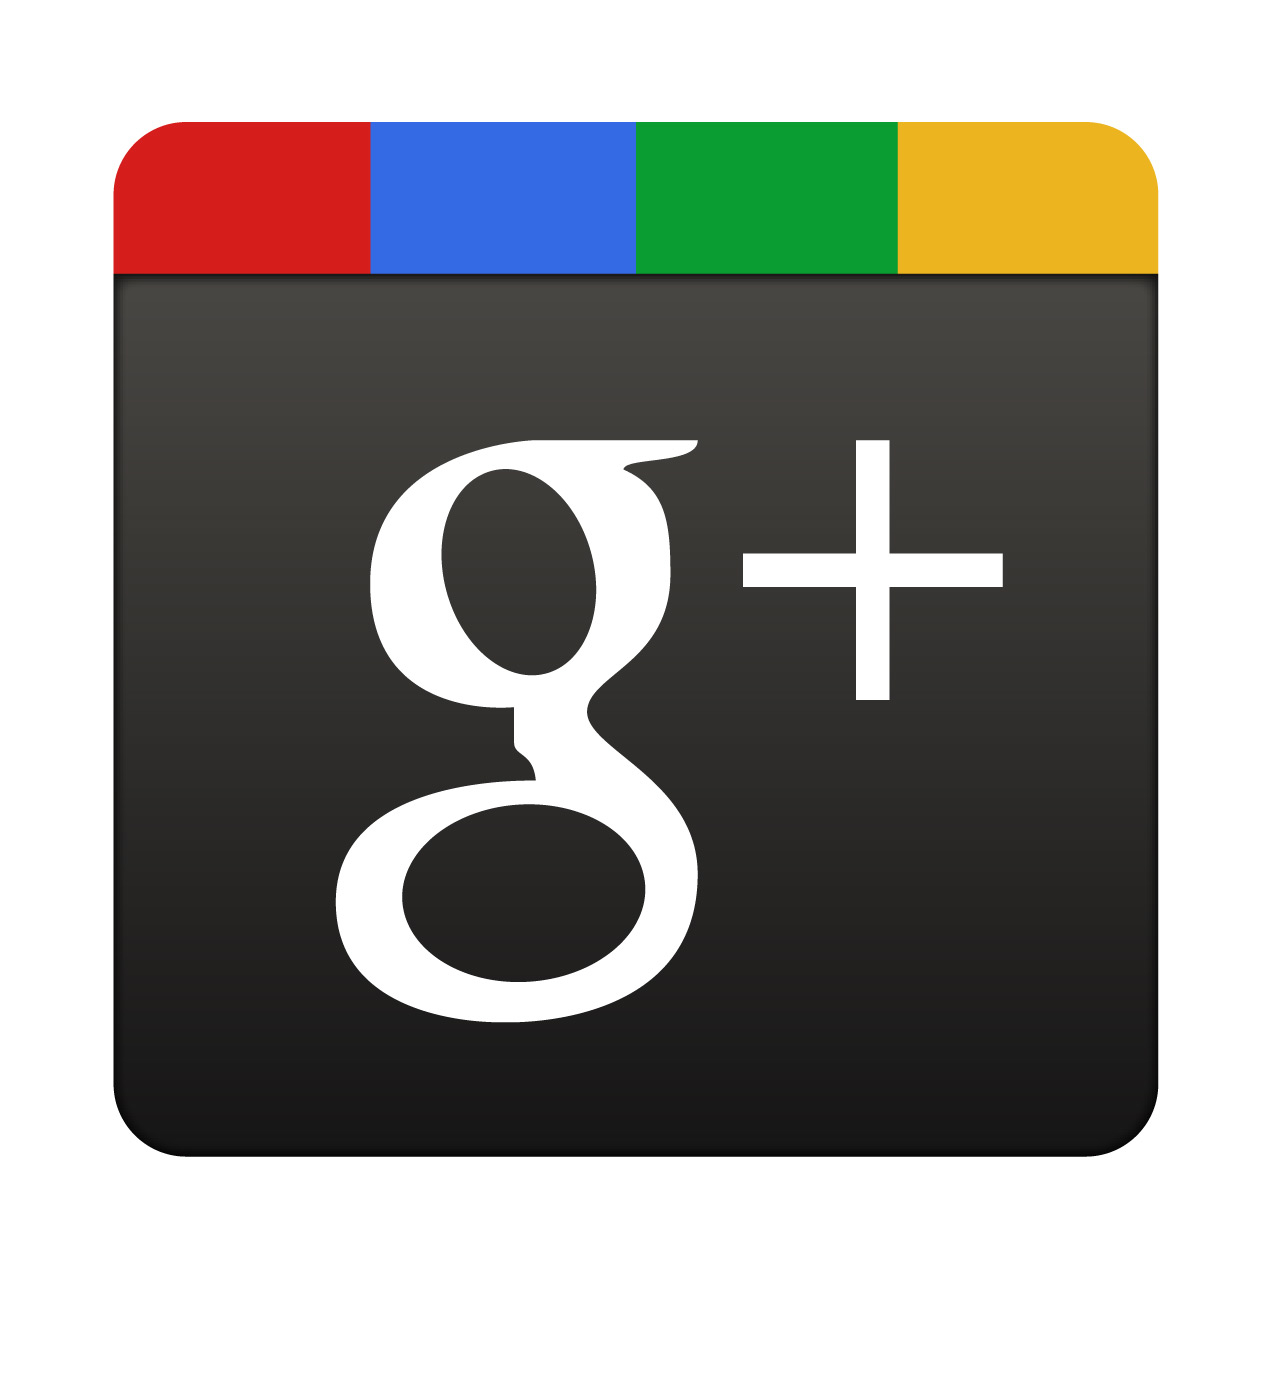 American Moving and Storage is on google+